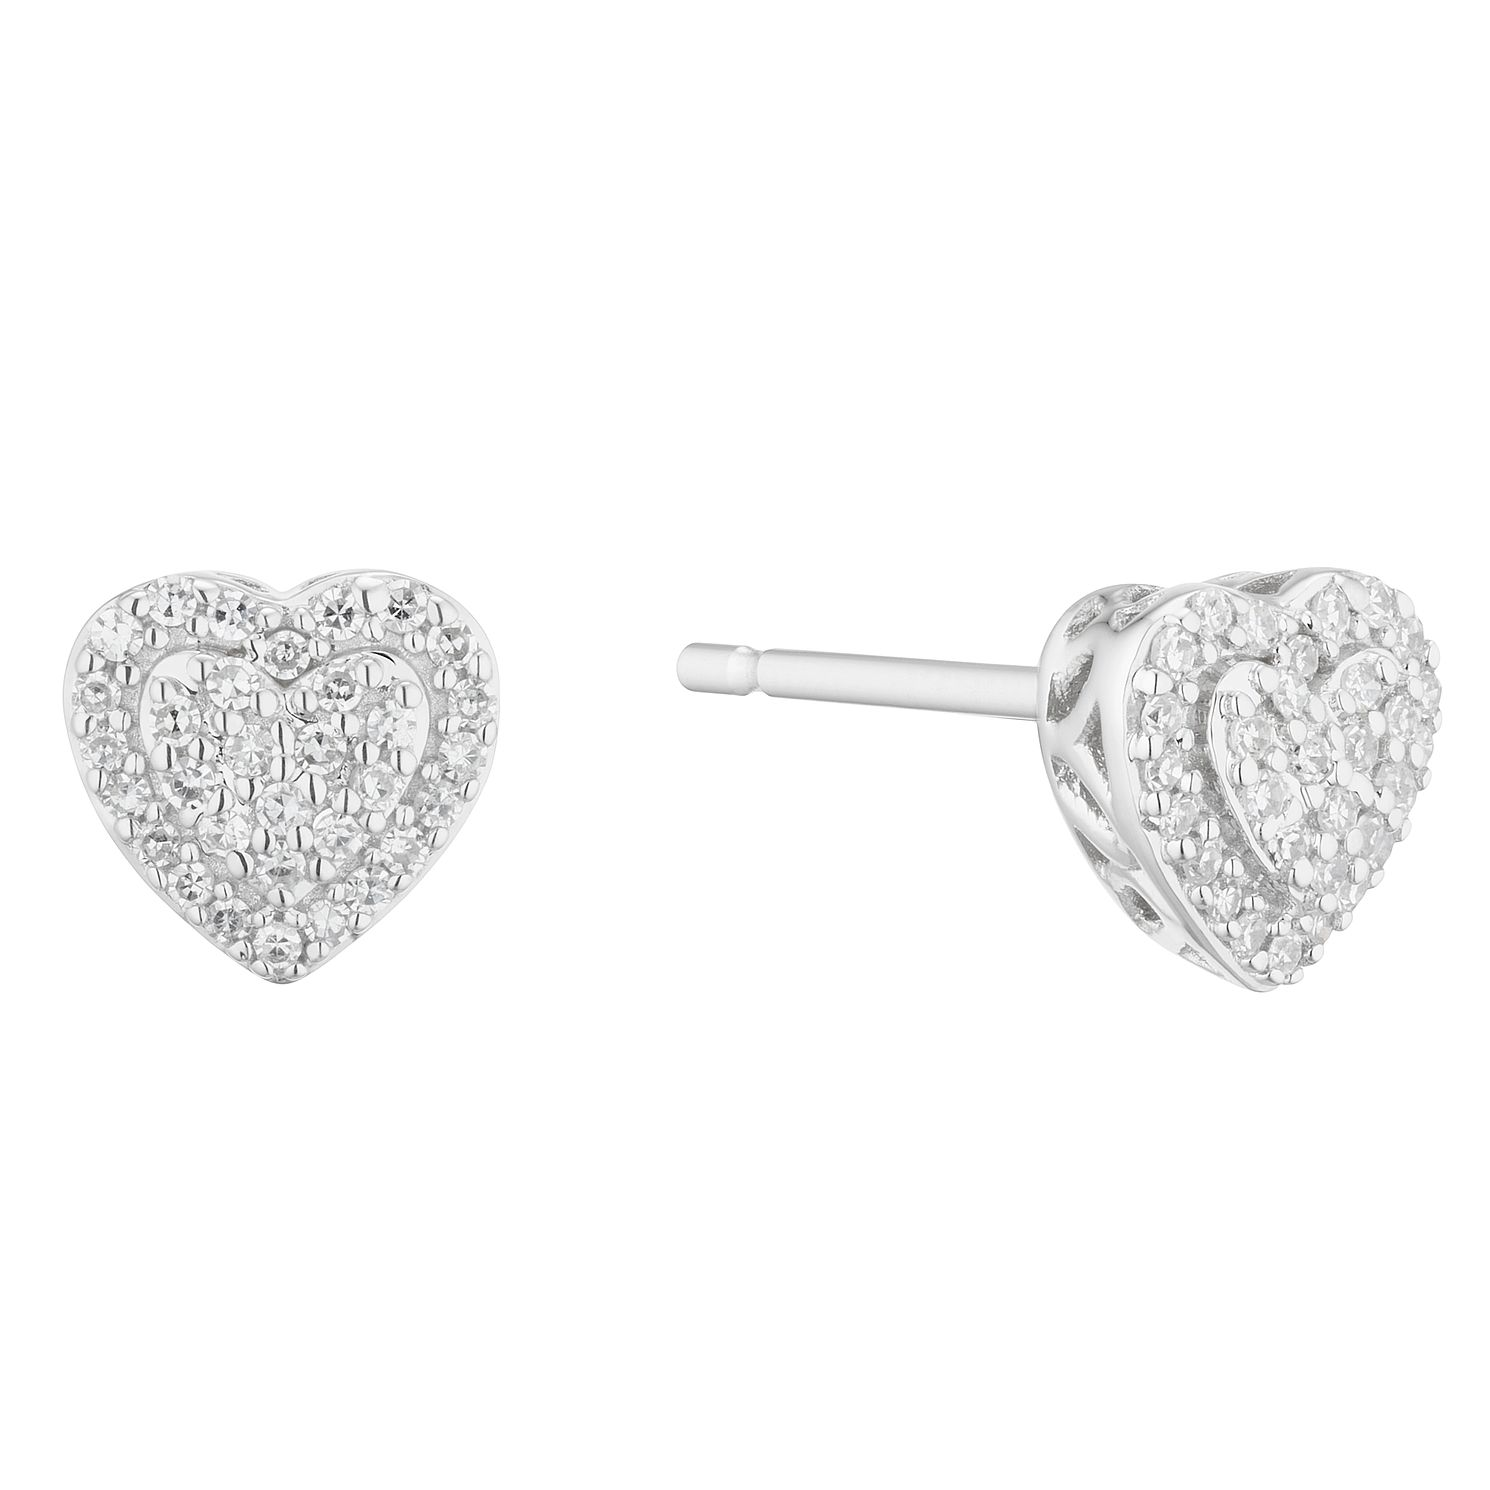 9ct White Gold 1/10ct Diamond Heart Stud Earrings - Product number 5920523